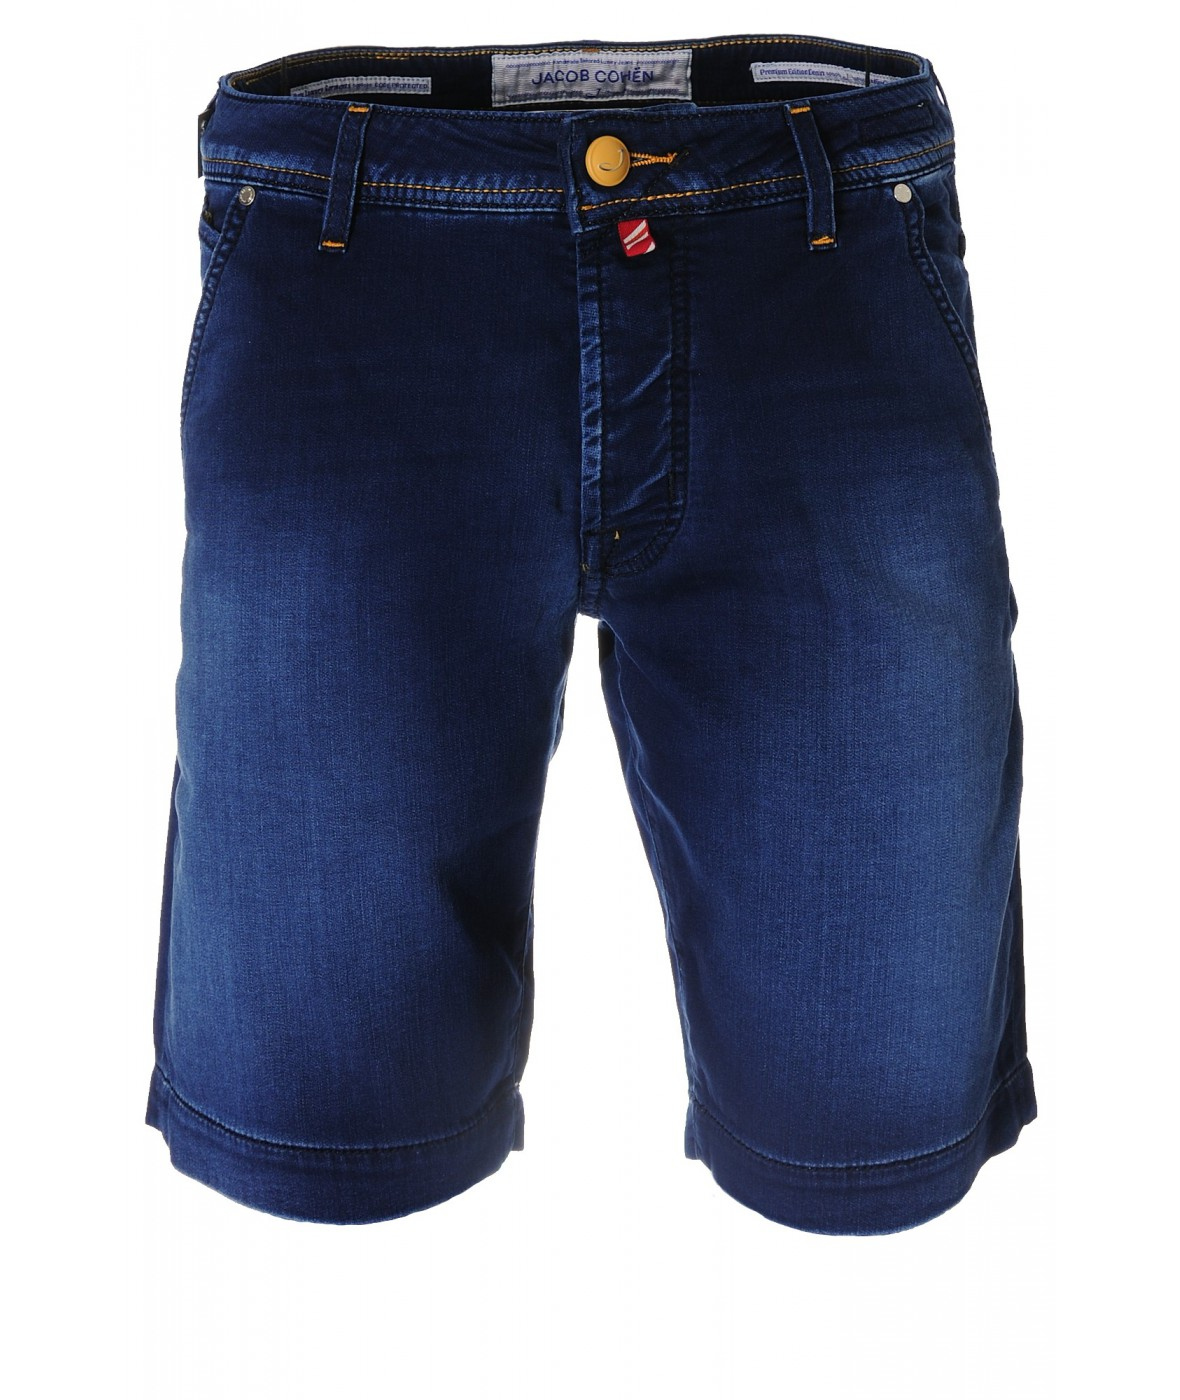 Jacob Cohen J6613 Short Jeans Dark Blue (32362)